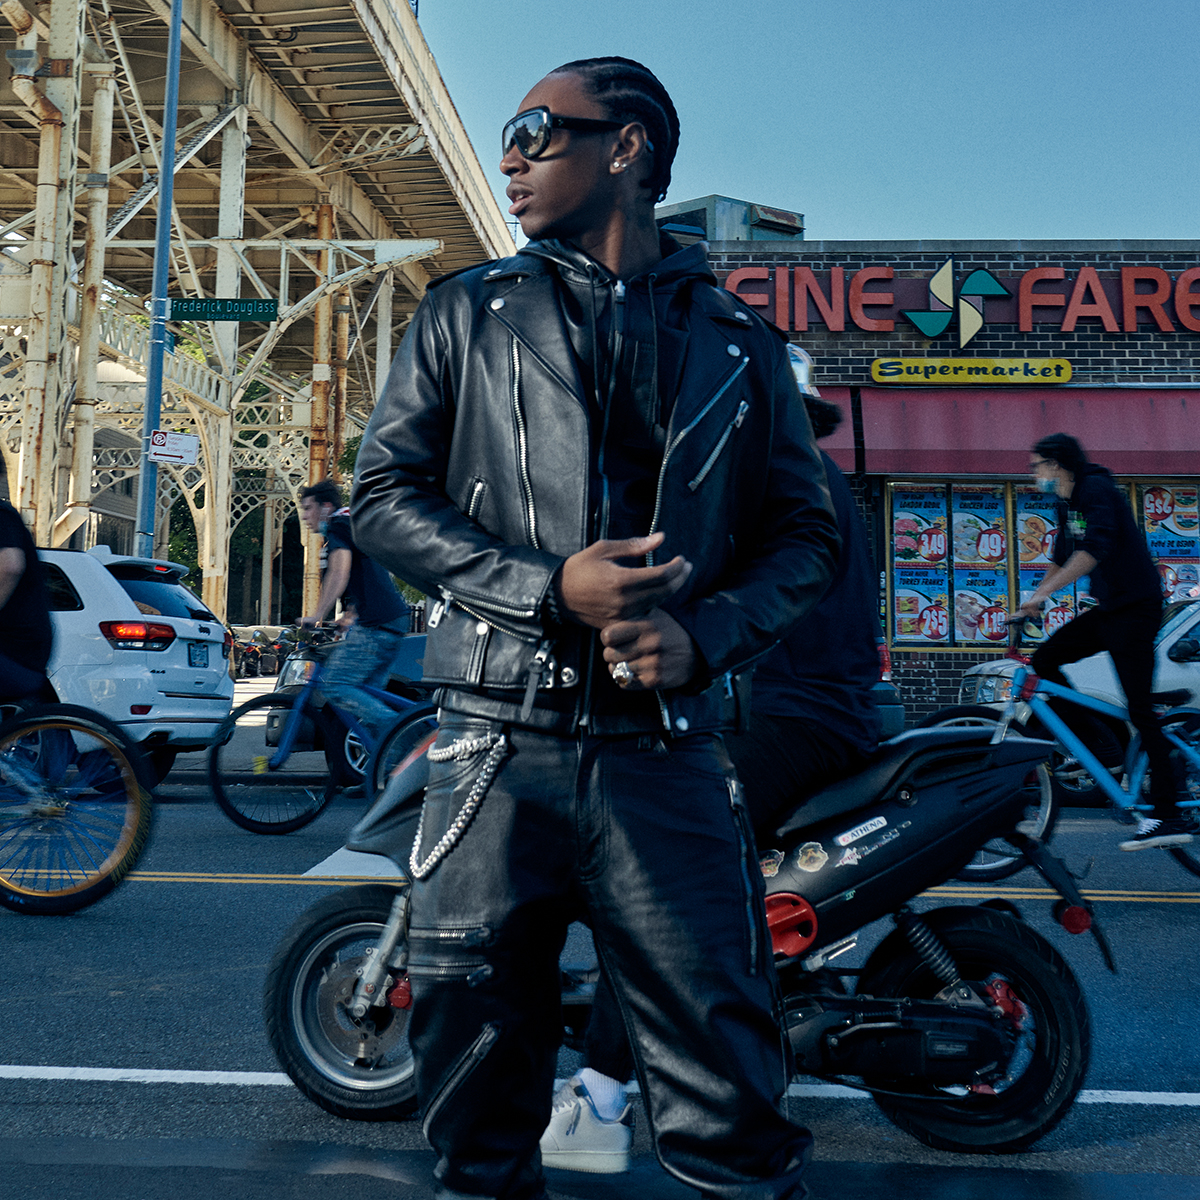 Coach's New Men's Outerwear Collection Is NYC Street Style at Its Best